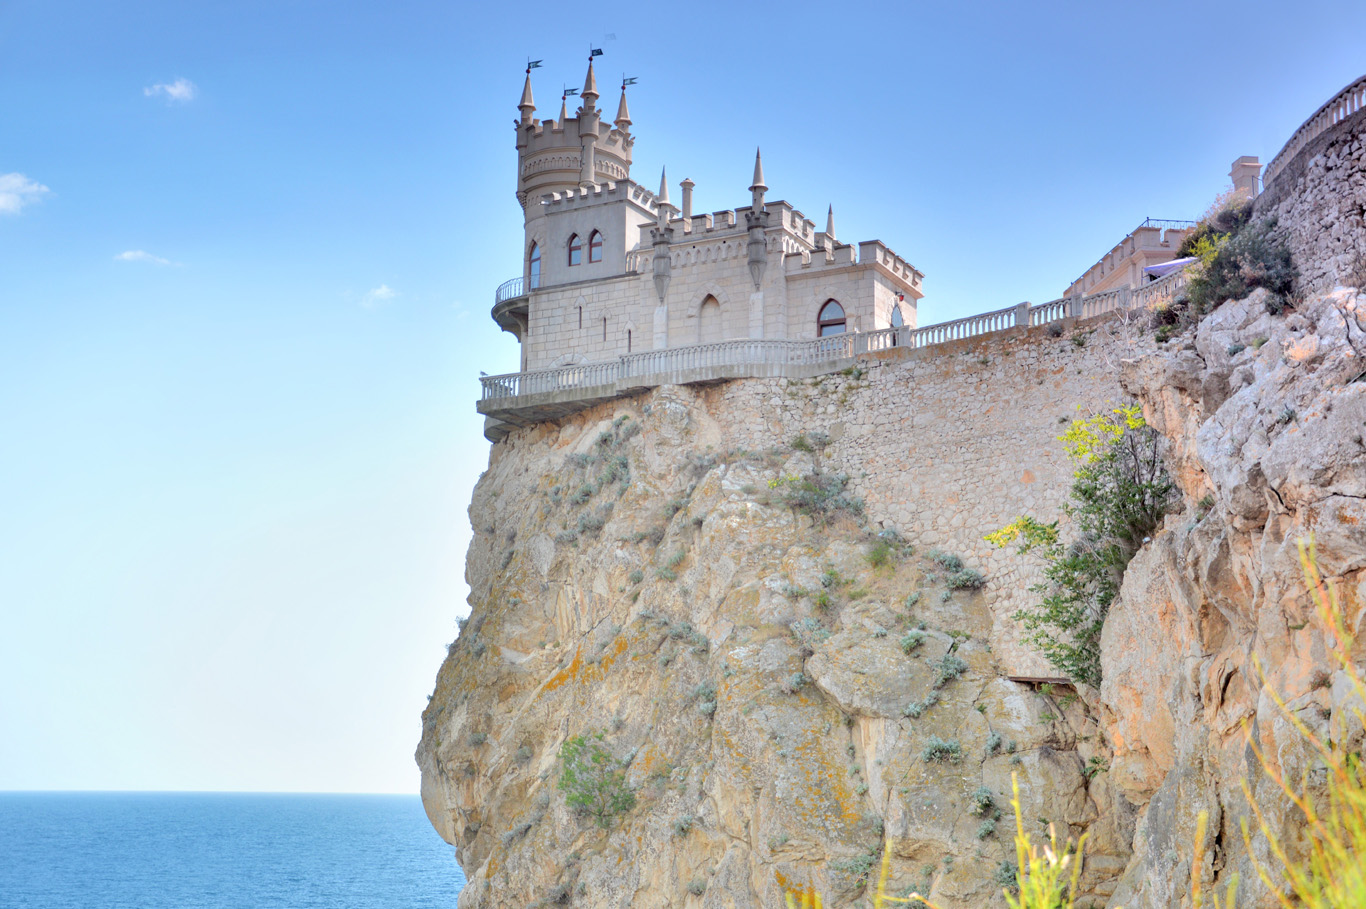 Swallow's Nest perched on the cliff